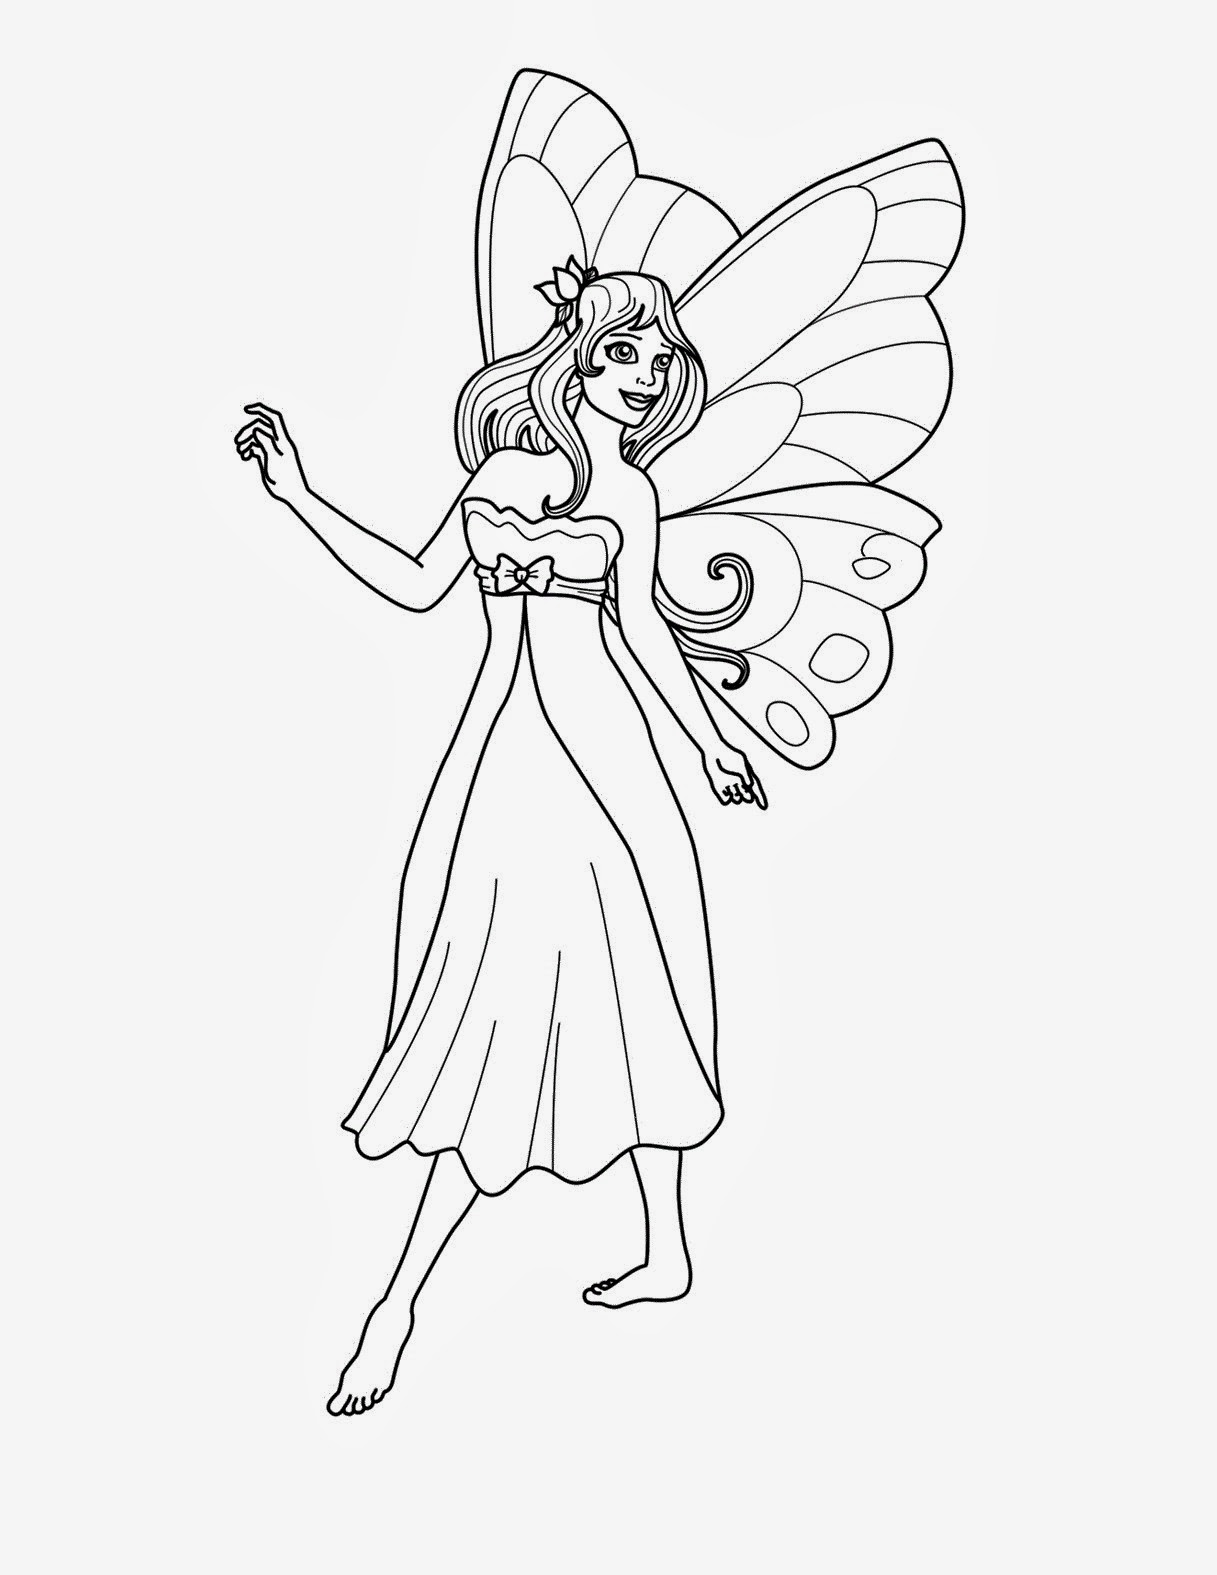 Adult coloring pages free to print fairies - Adult Coloring Pages Fairy Printable Free